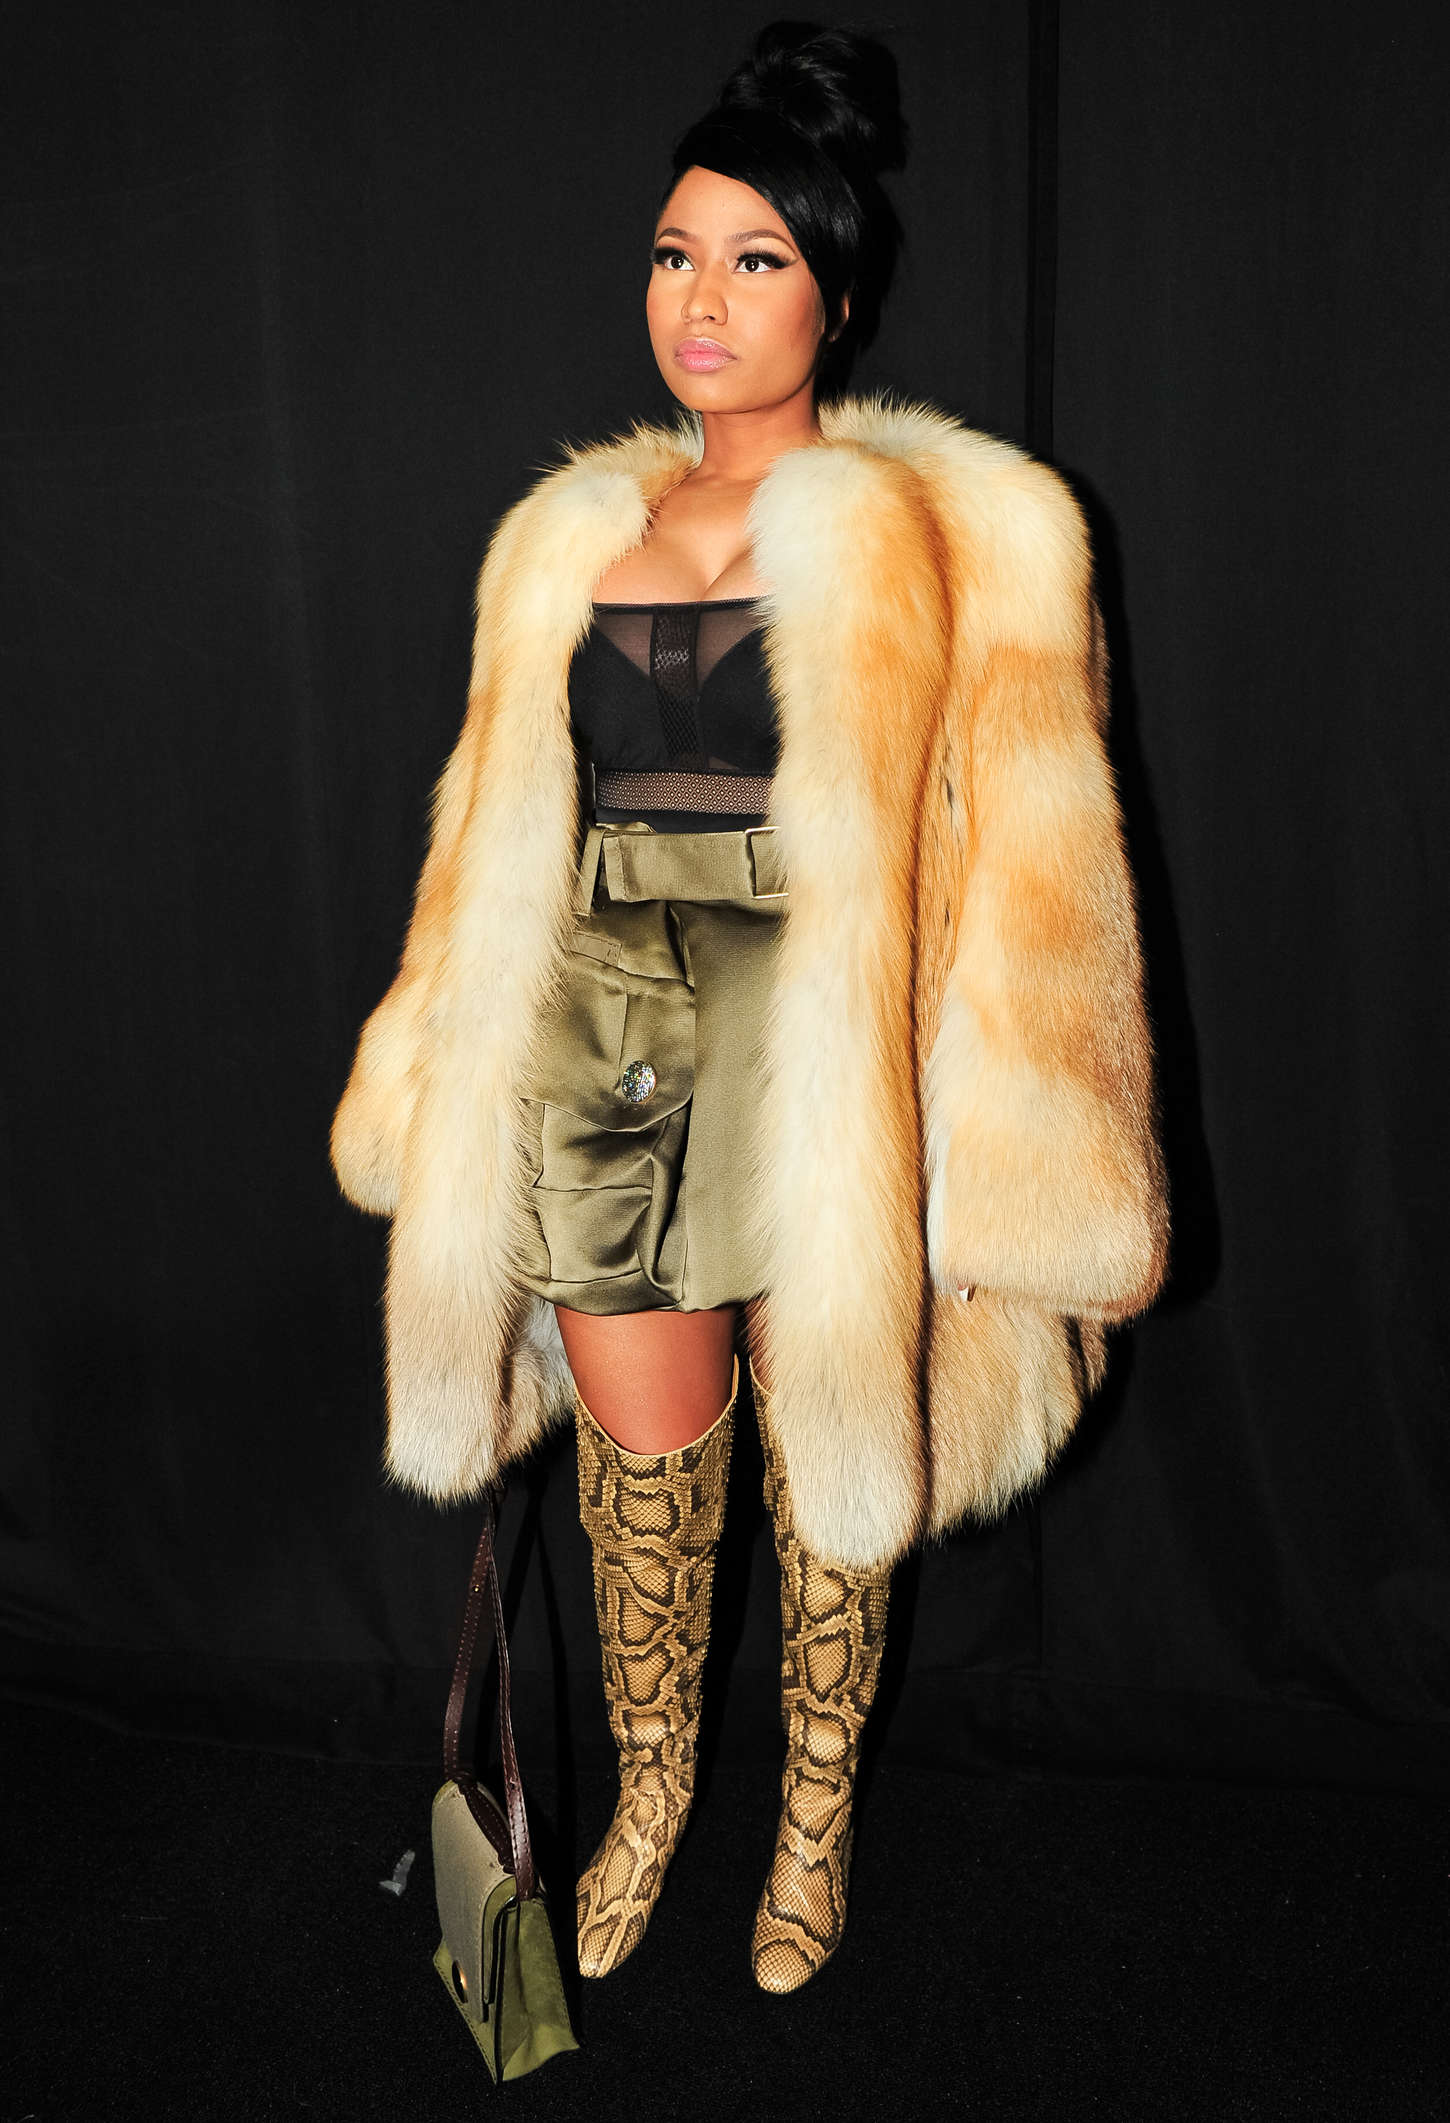 Nicki Minaj Marc Jacobs Fashion Show 2015 20 Gotceleb